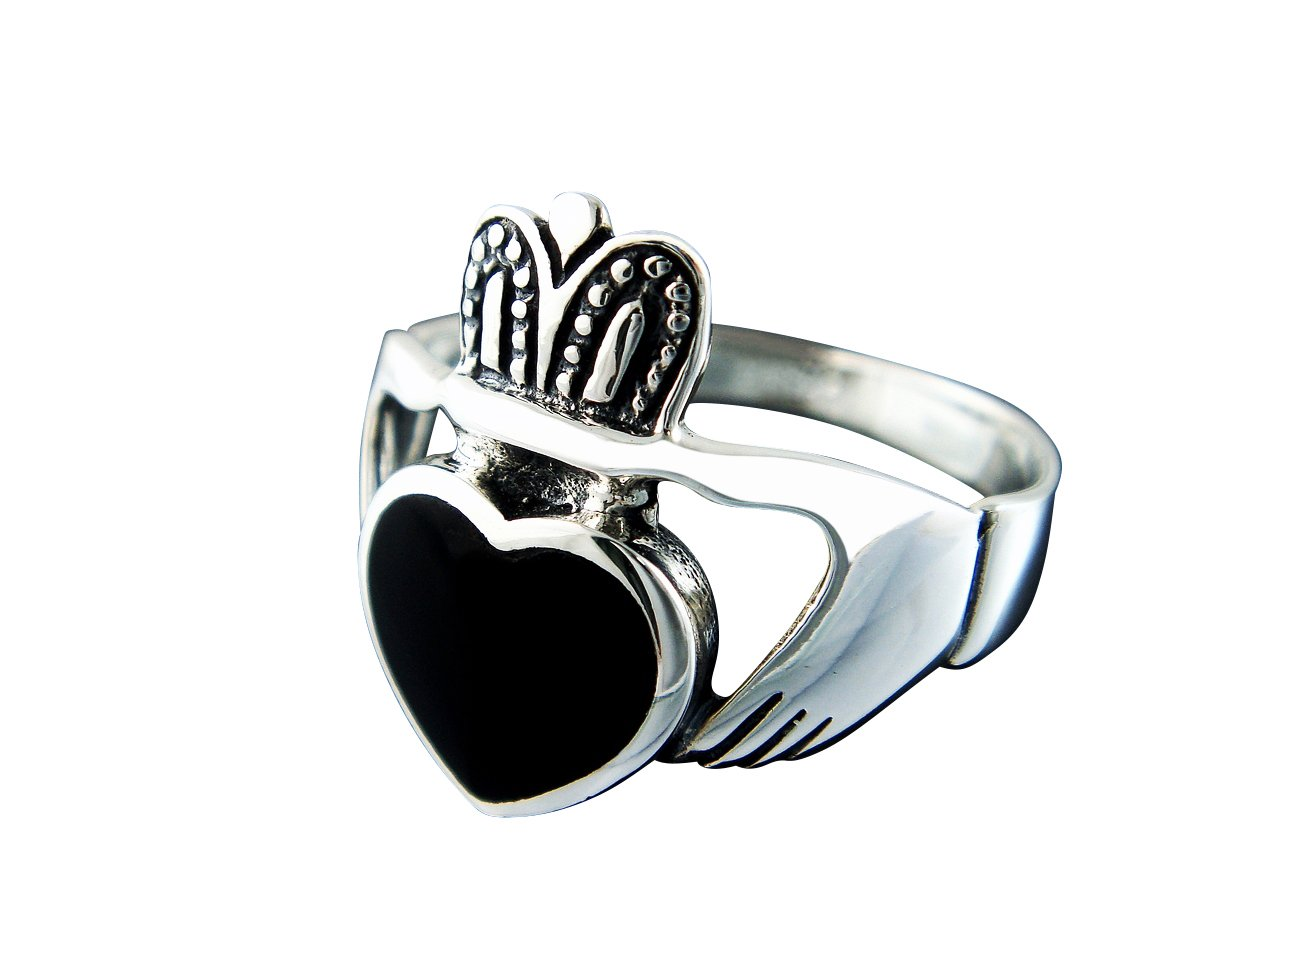 925 Sterling Silver Men's Black Onyx Celtic Irish Claddagh Wedding Ring Size 10